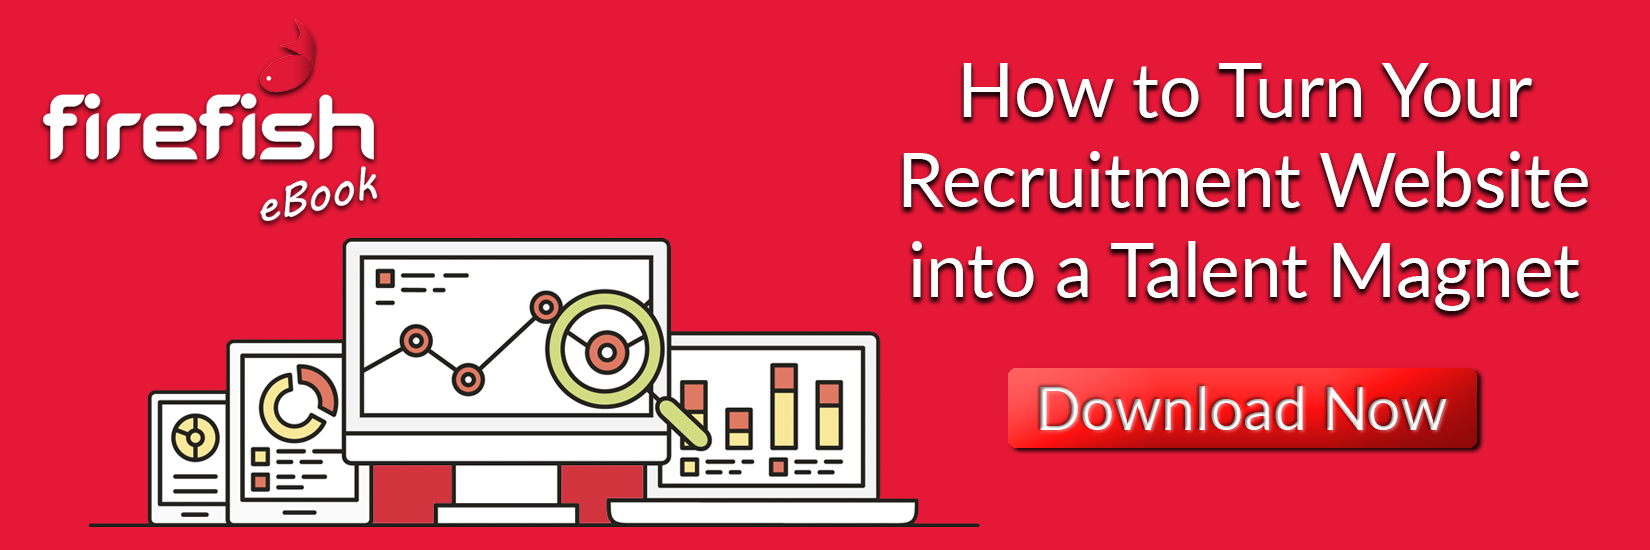 How to Build the Very Best Recruitment Website